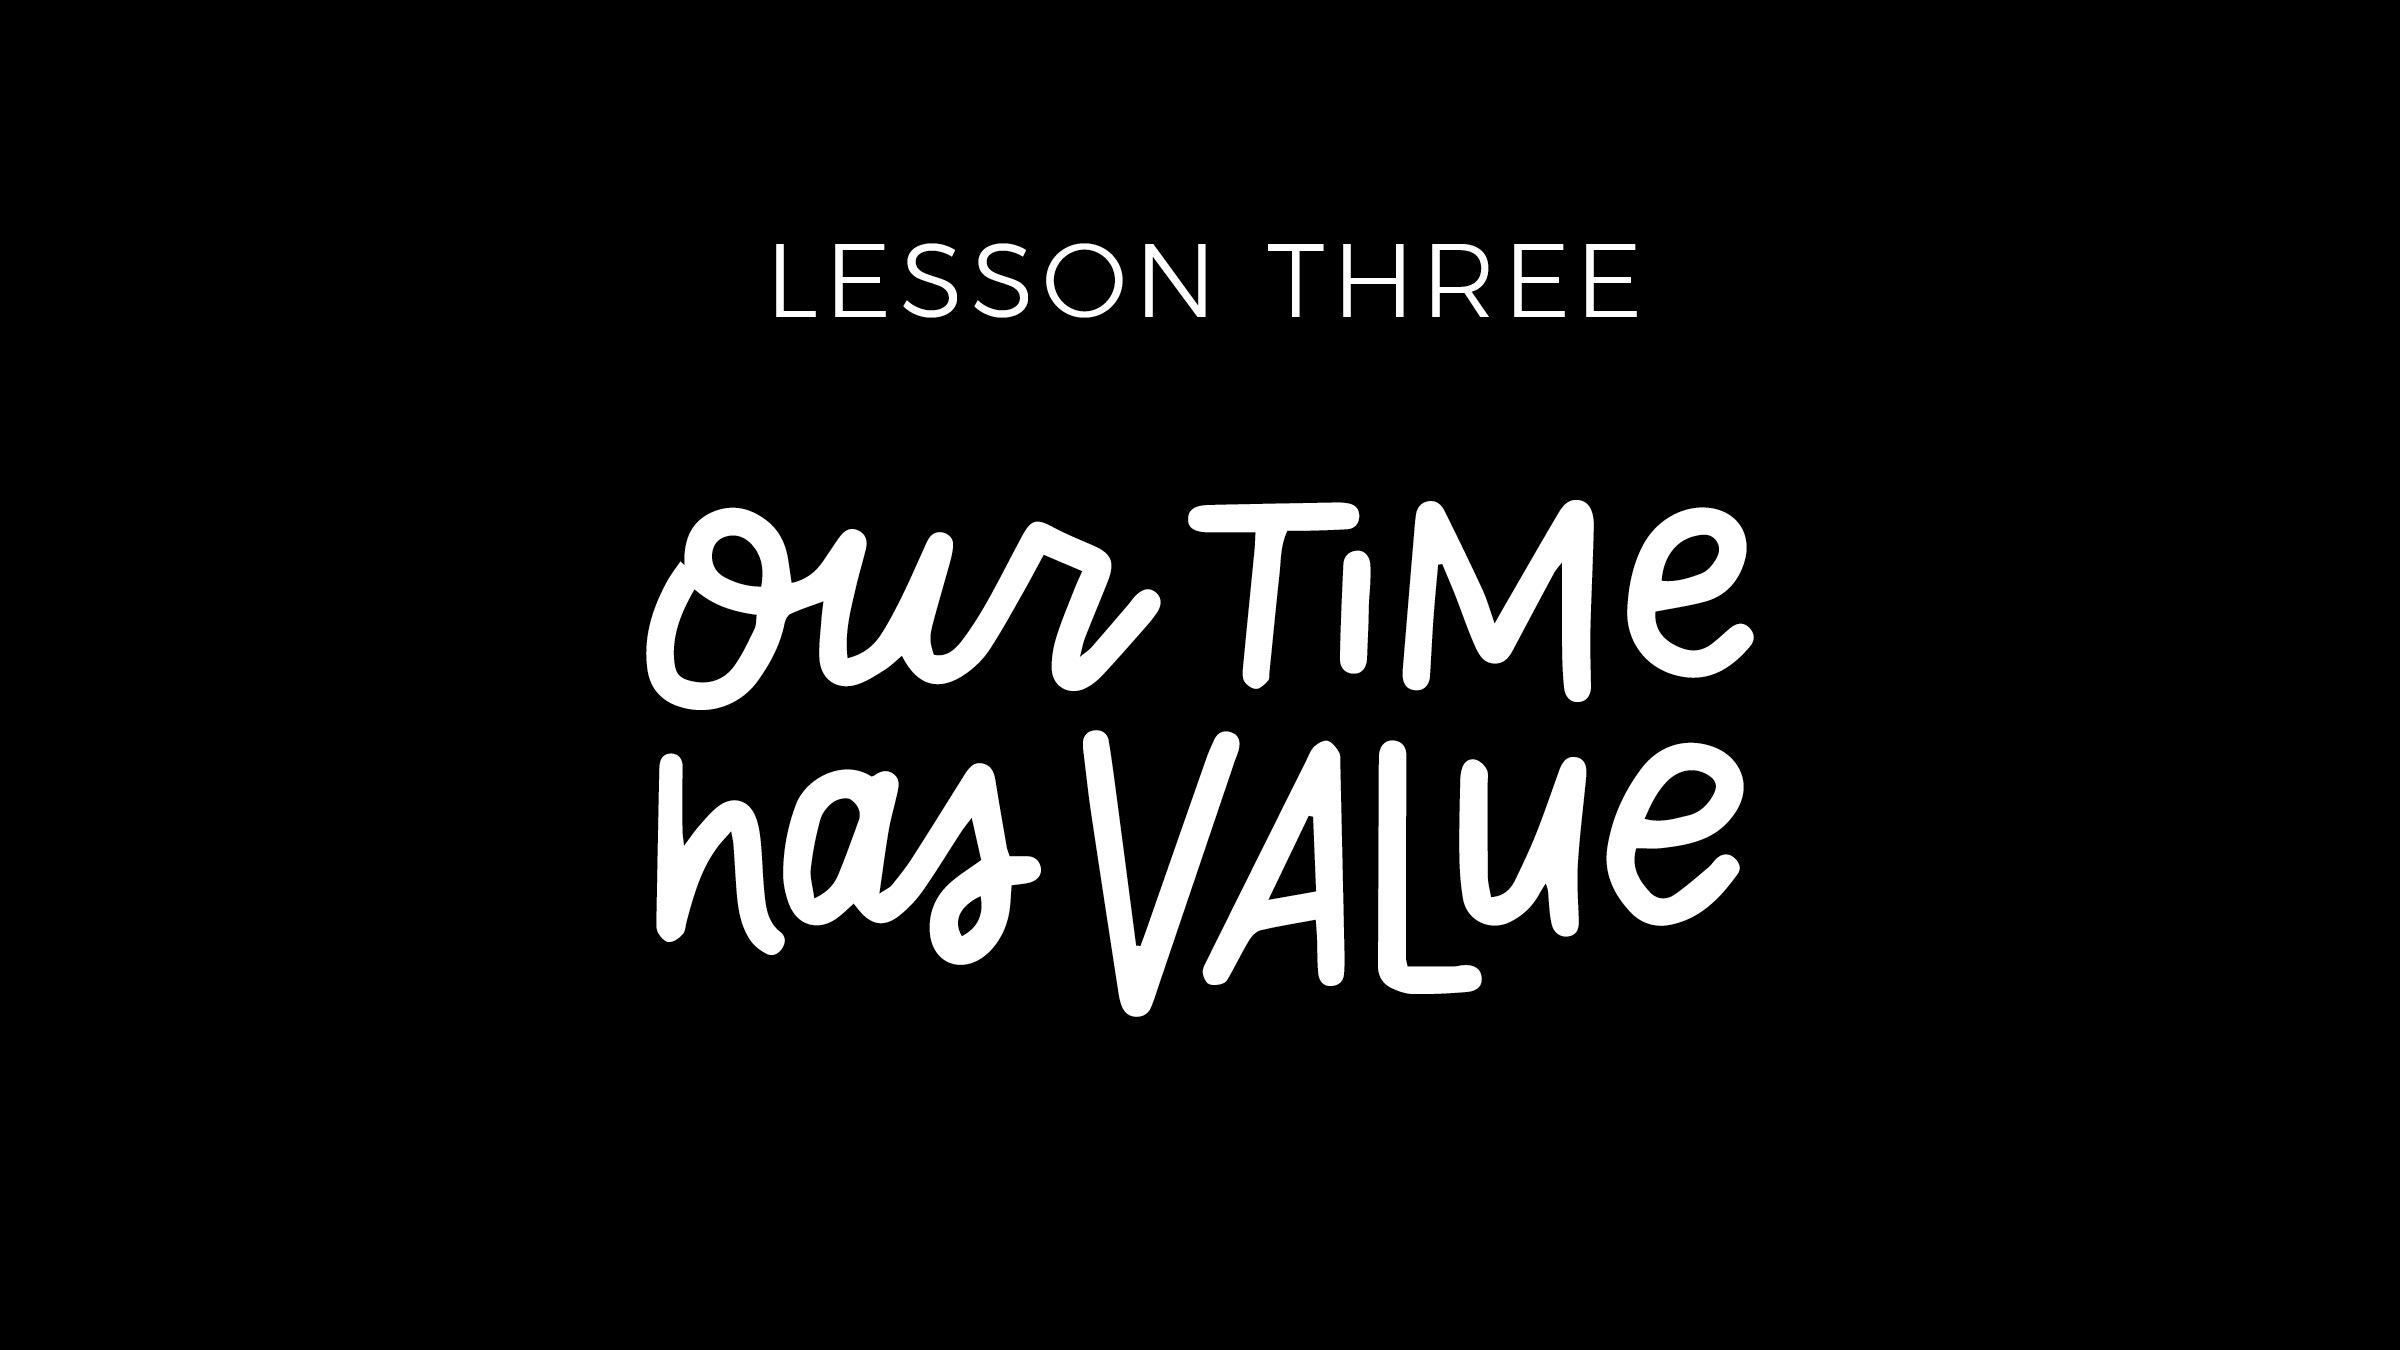 This lesson takes a bit of time to realize because often when we start a business, we have time and little money. And we don't fully grasp how valuable our time is because, well, it hasn't gotten that valuable just yet. But once you realize this, there is no going back. You can start to evaluate how your time is best spend and what provides the most value to both yourself and others.